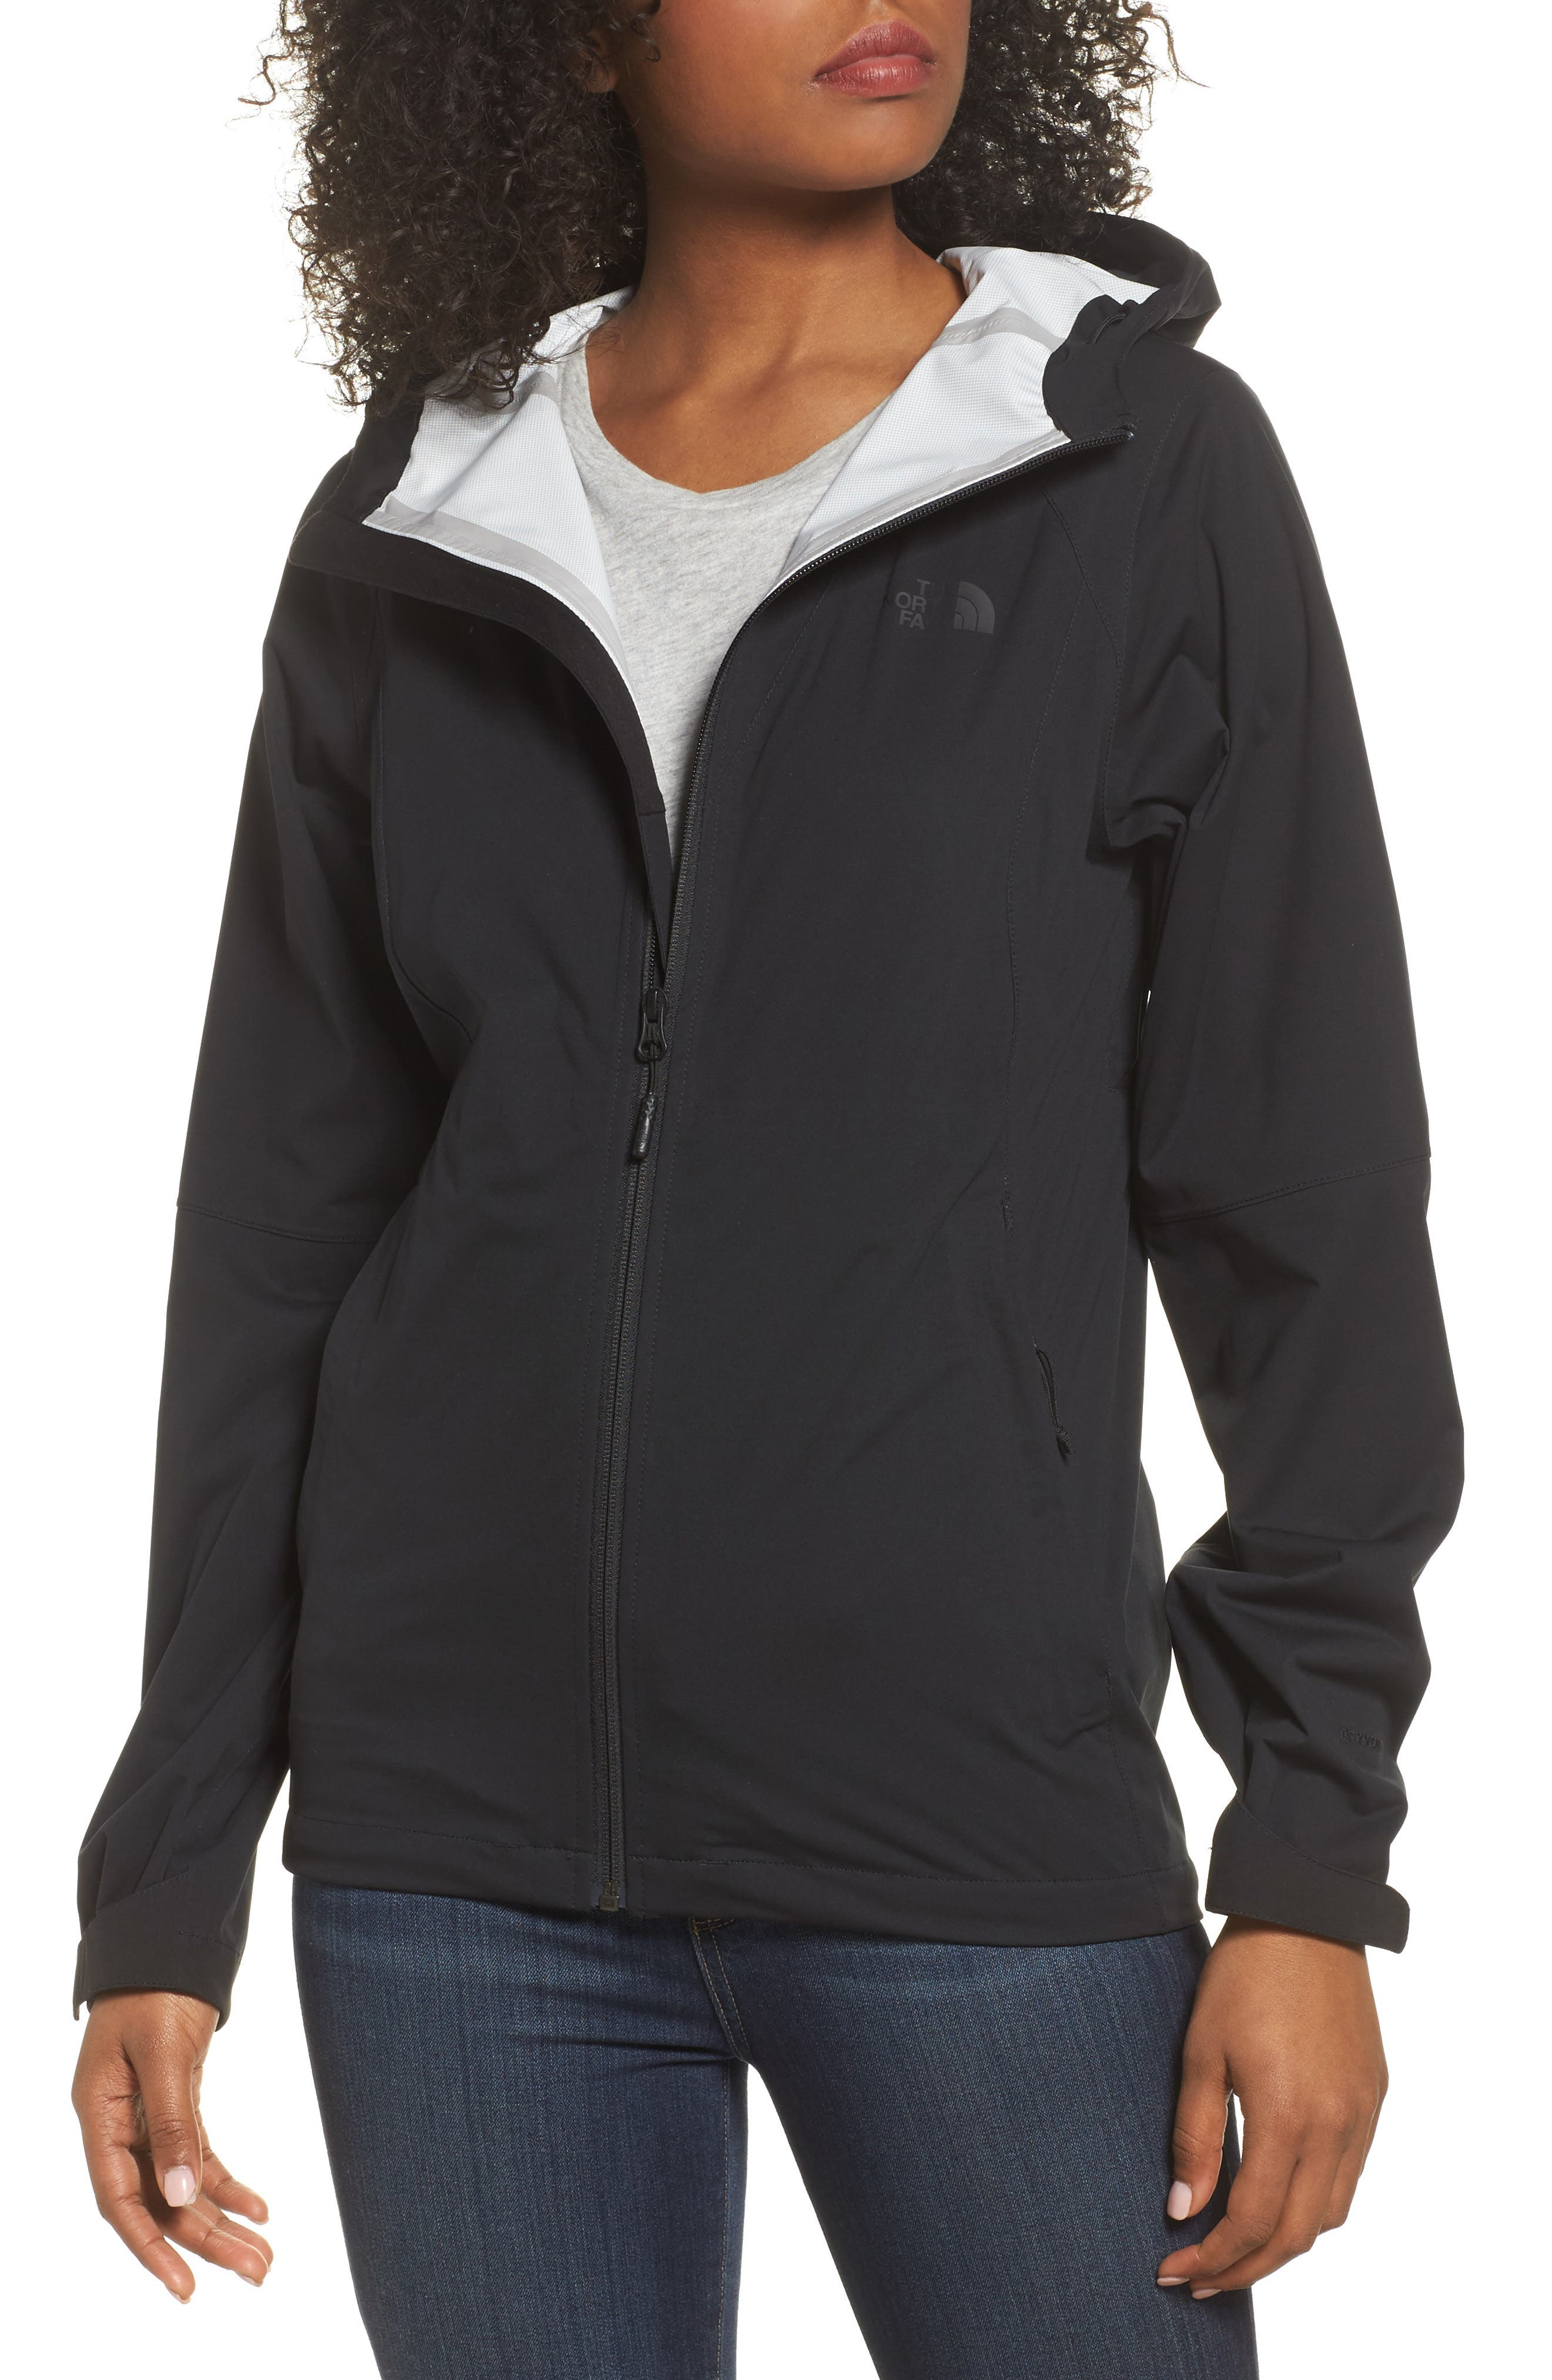 Allproof Stretch Jacket,                             Main thumbnail 1, color,                             TNF BLACK